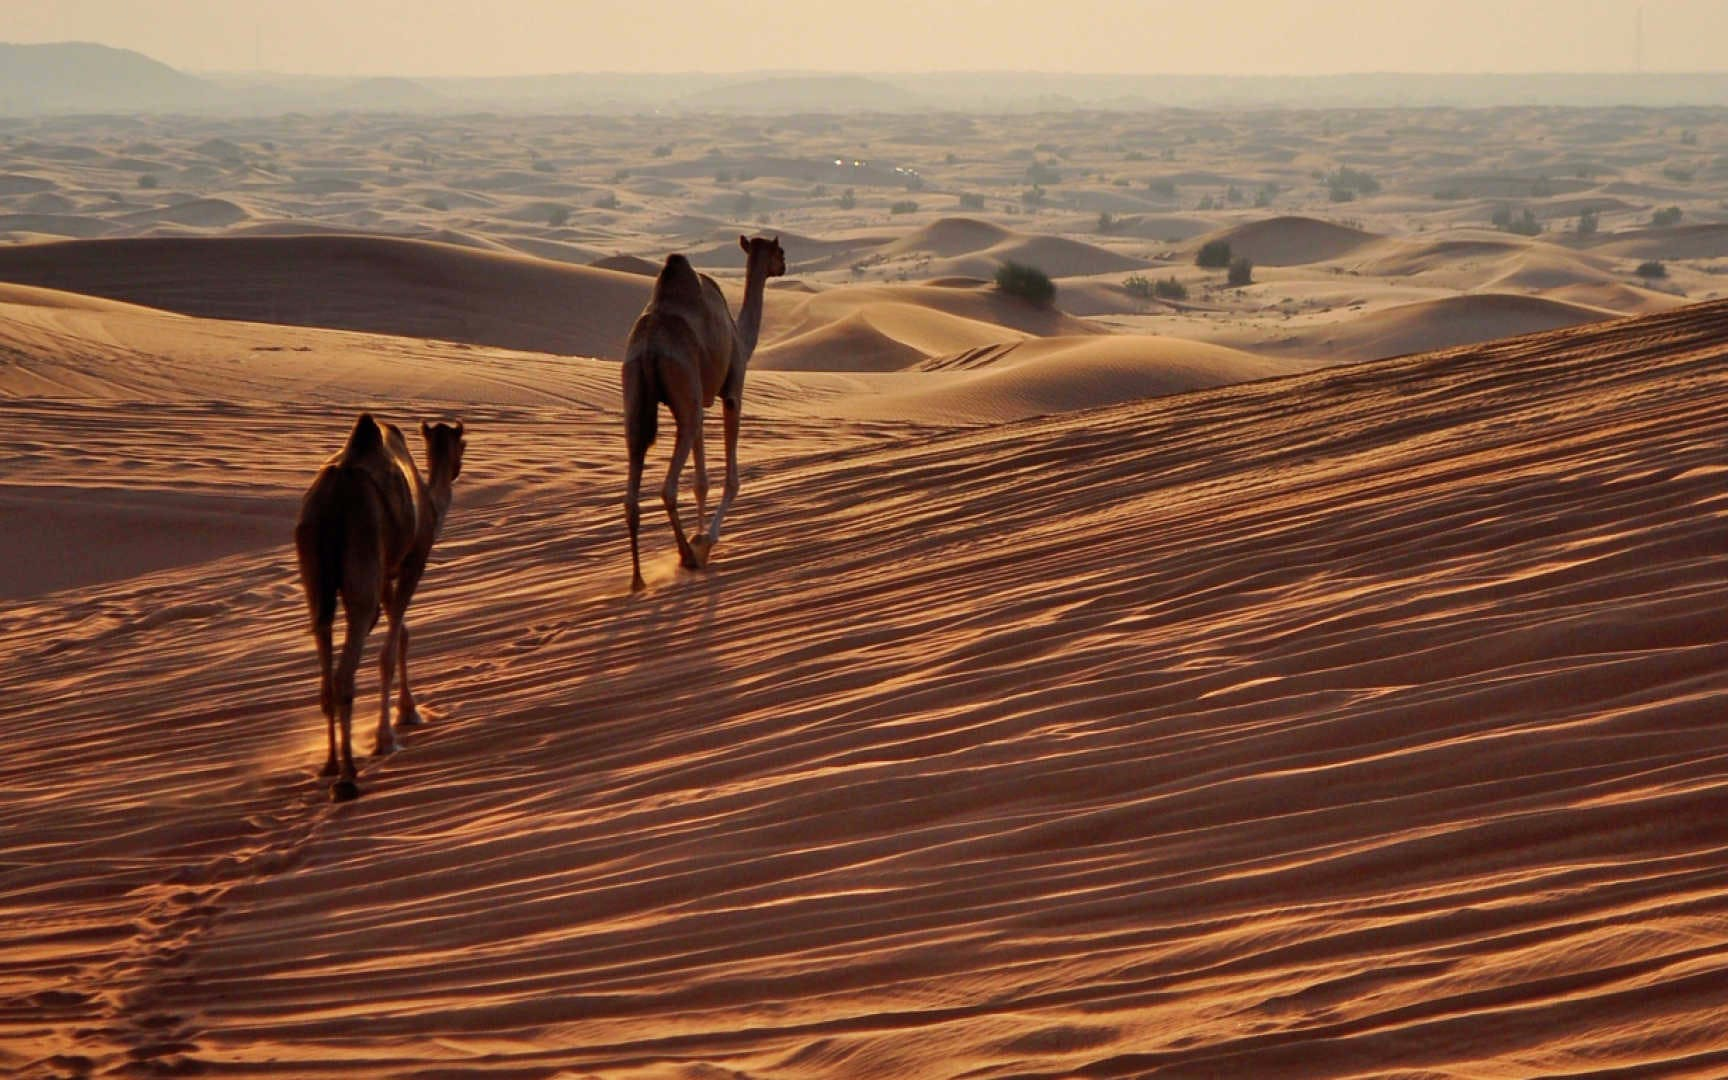 luxury desert safari in al khaimah-3